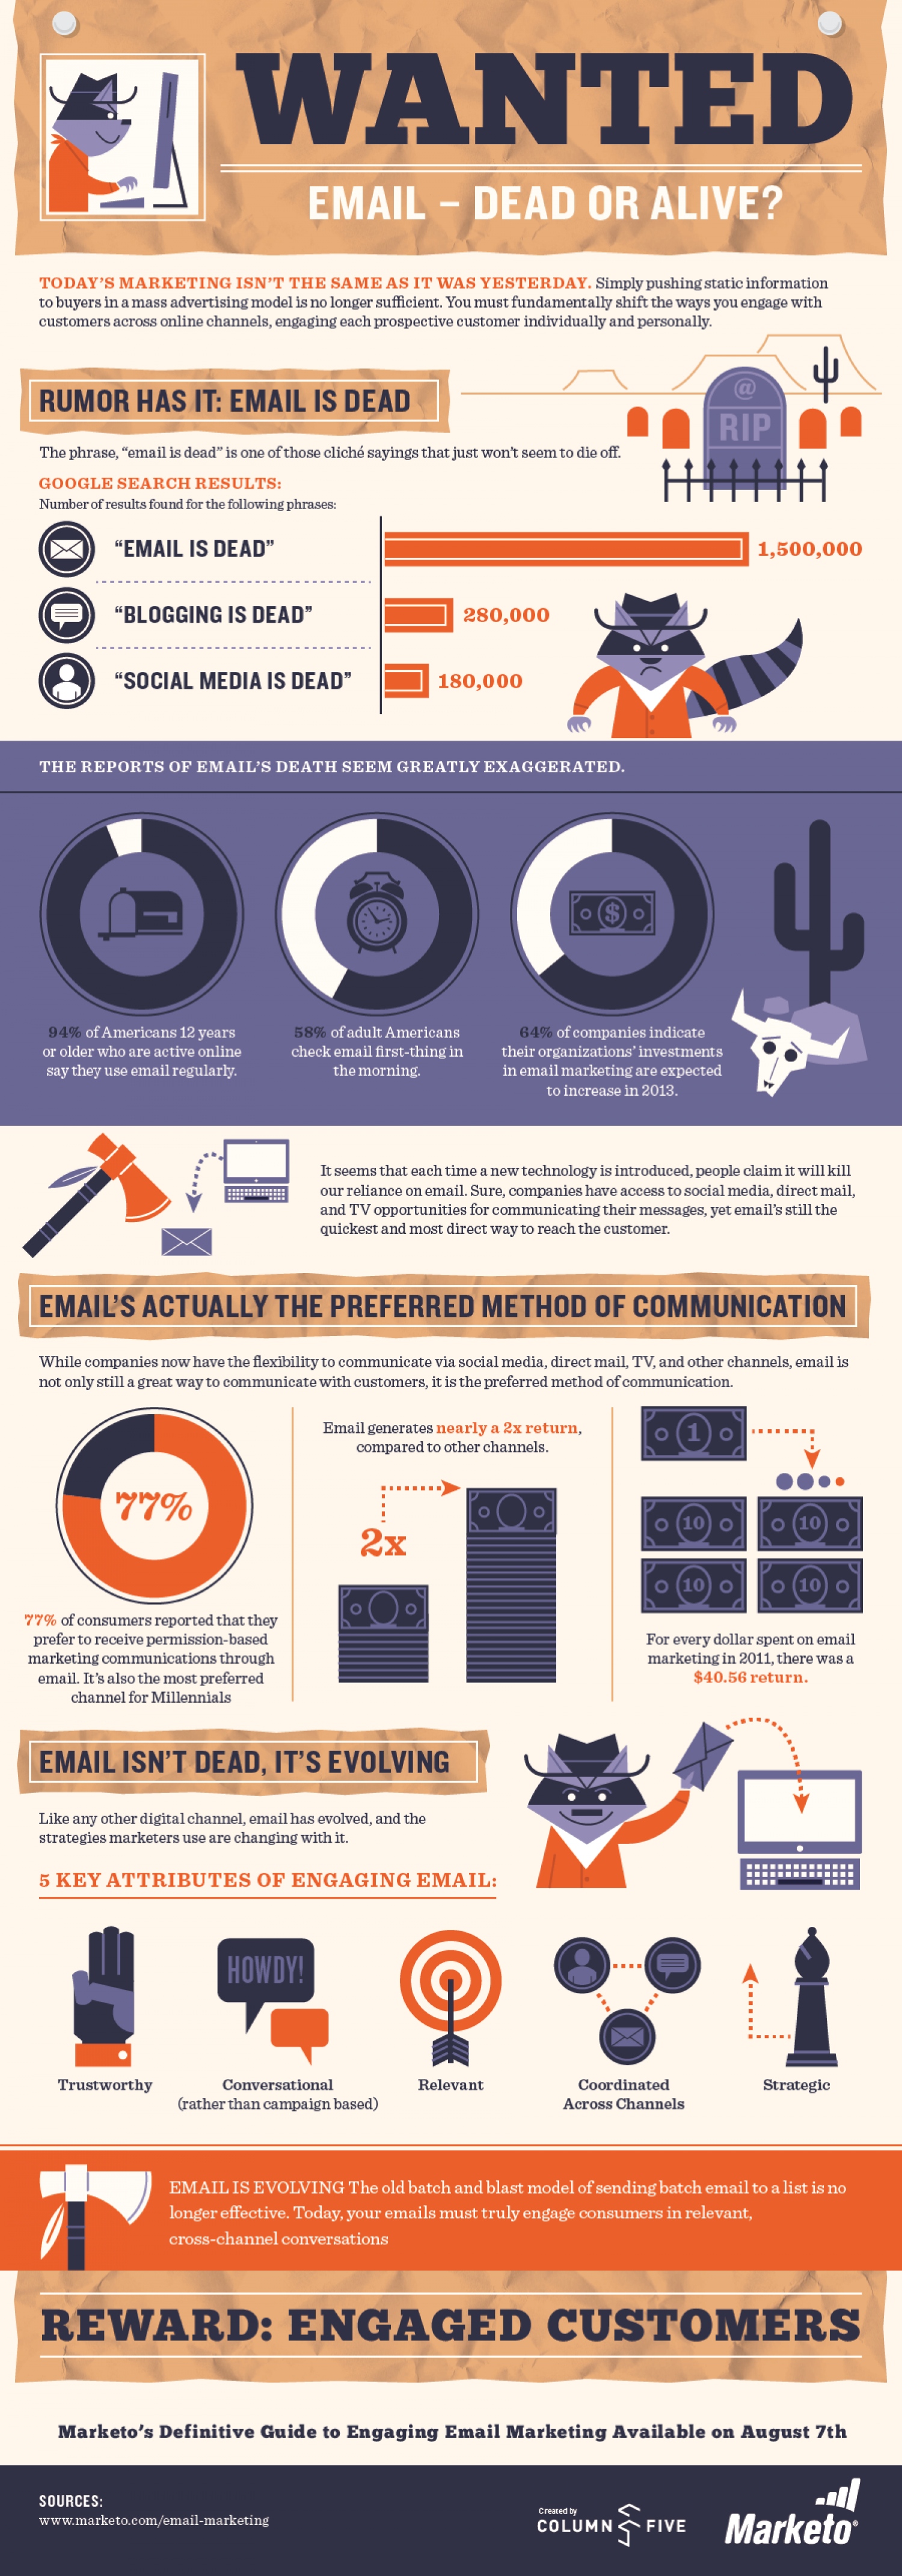 Email Wanted Dead or Alive Infographic